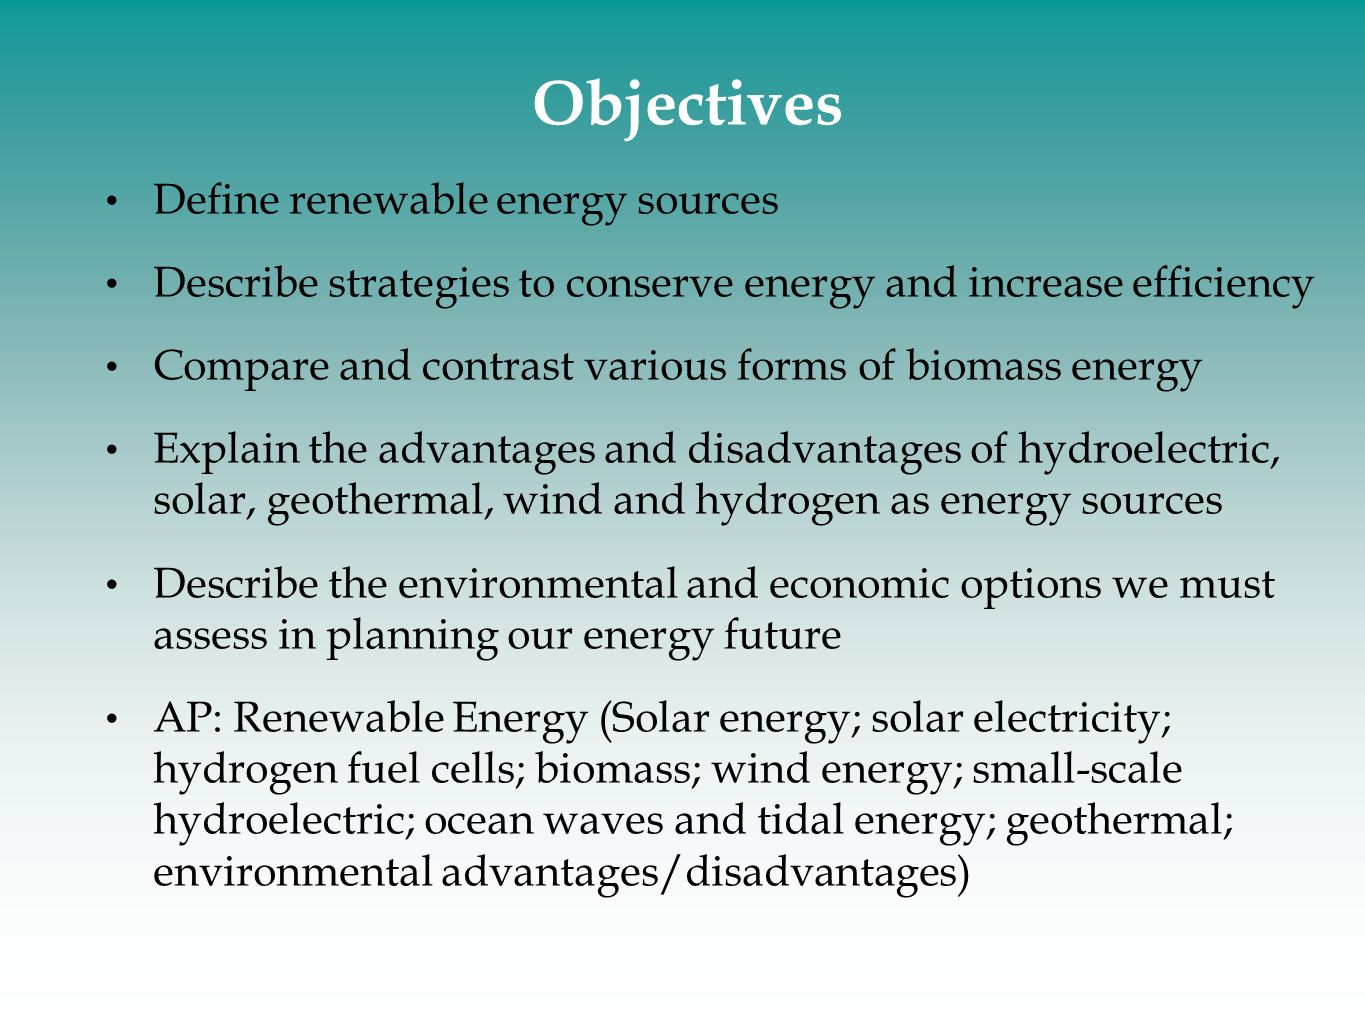 achieving energy sustainability - ppt download